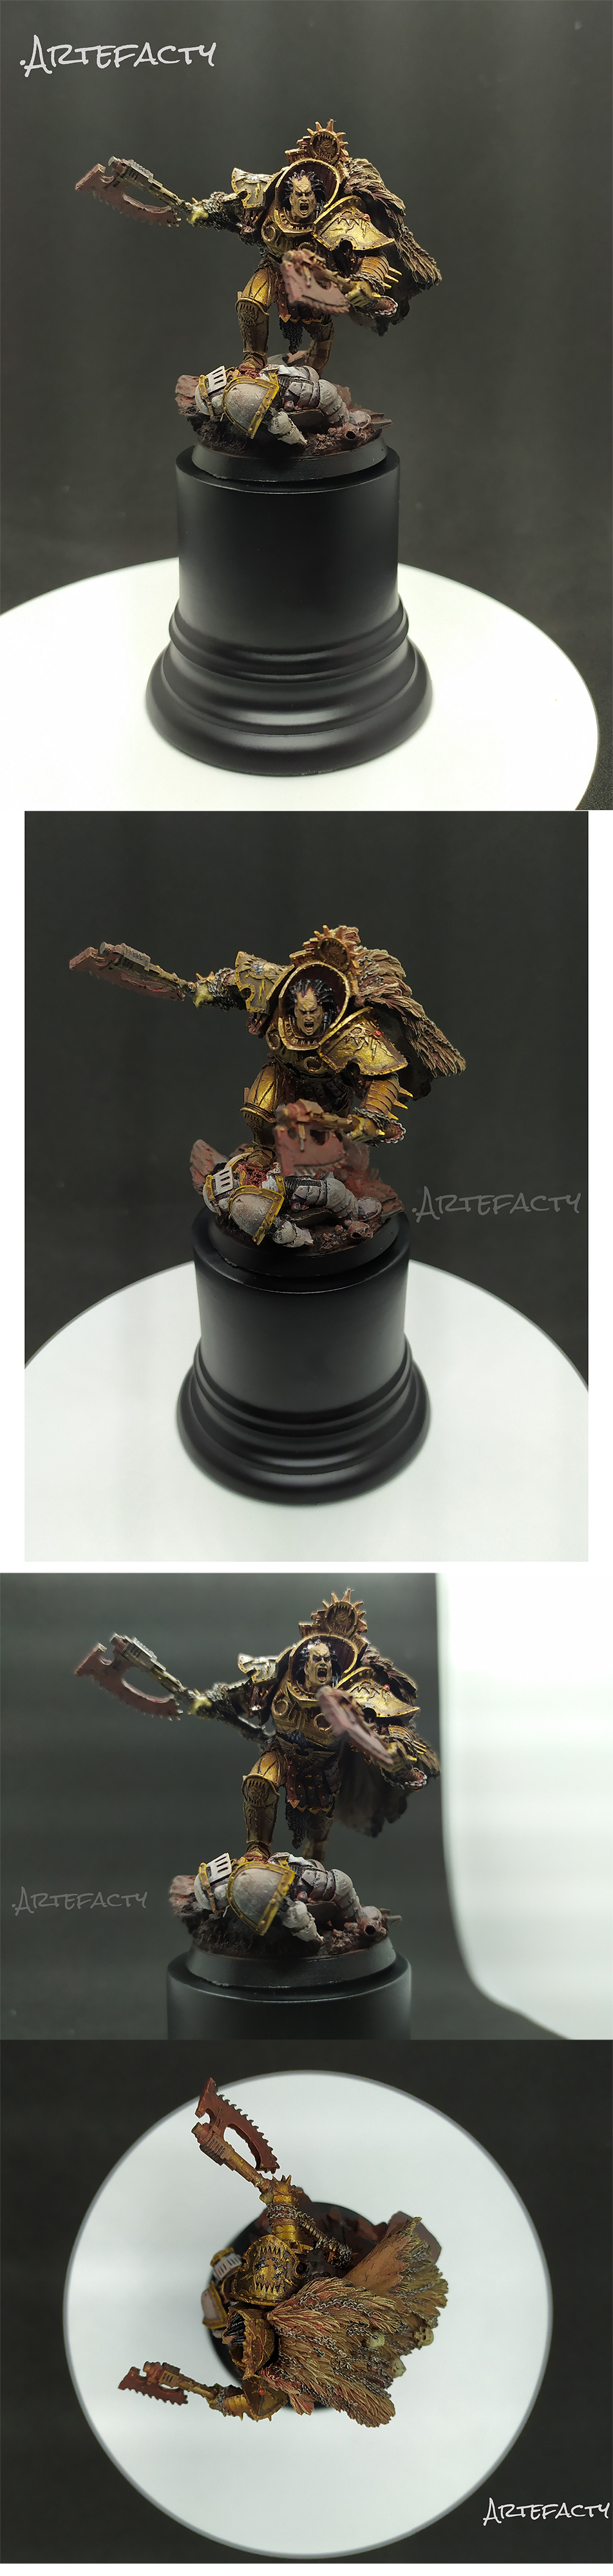 [HH] Angron - Primarch of the World Eaters